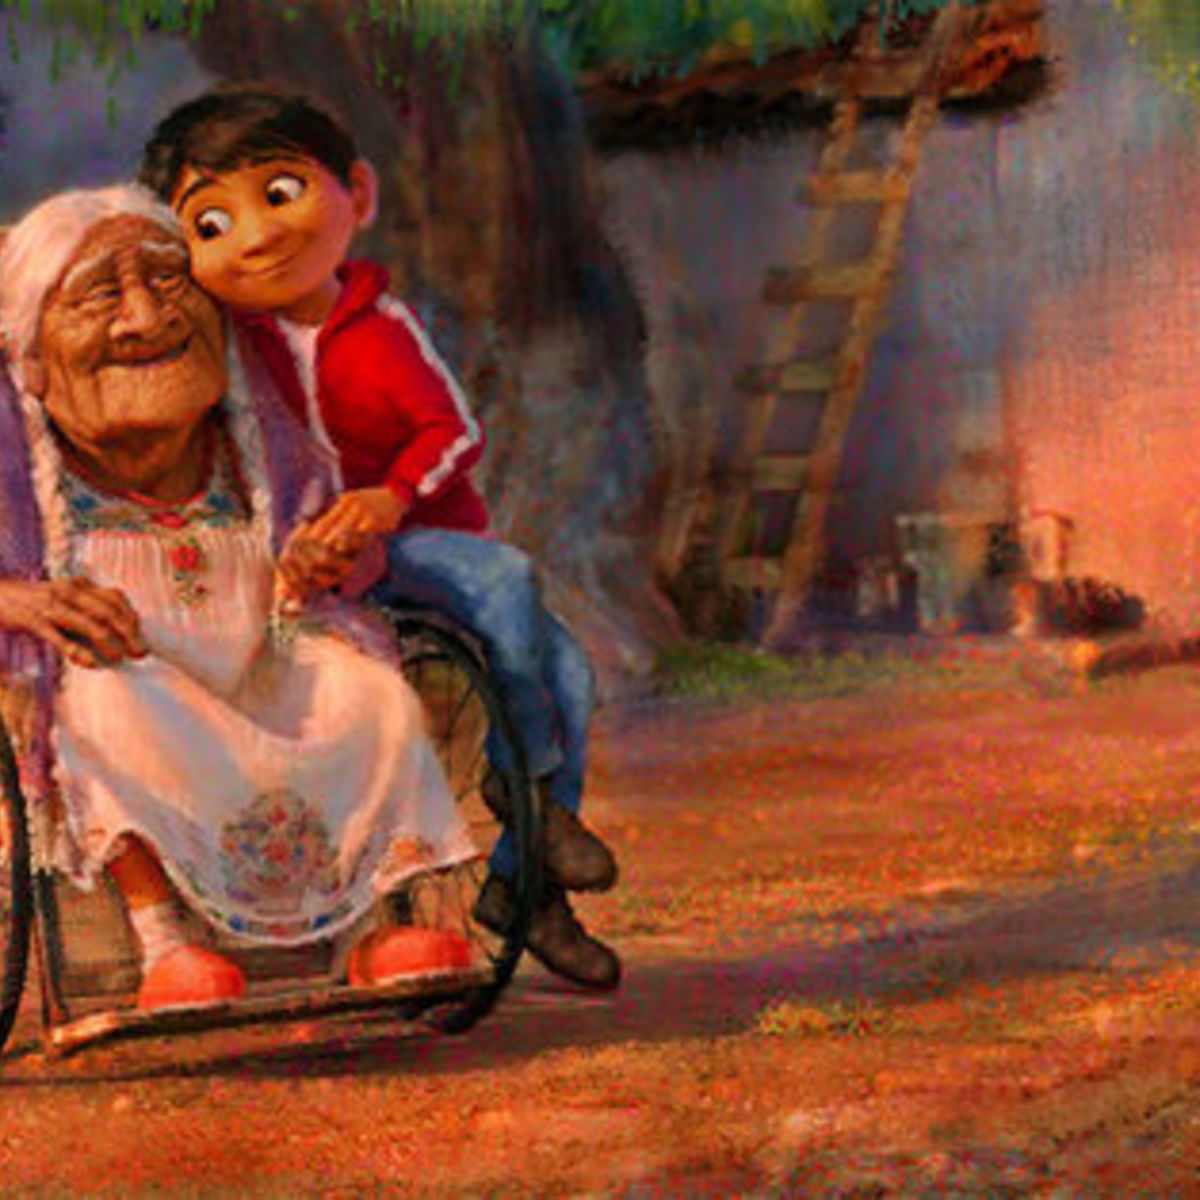 pixars-upcoming-animated-film-coco-gets-a-first-poster-and-story-details2_0.jpg